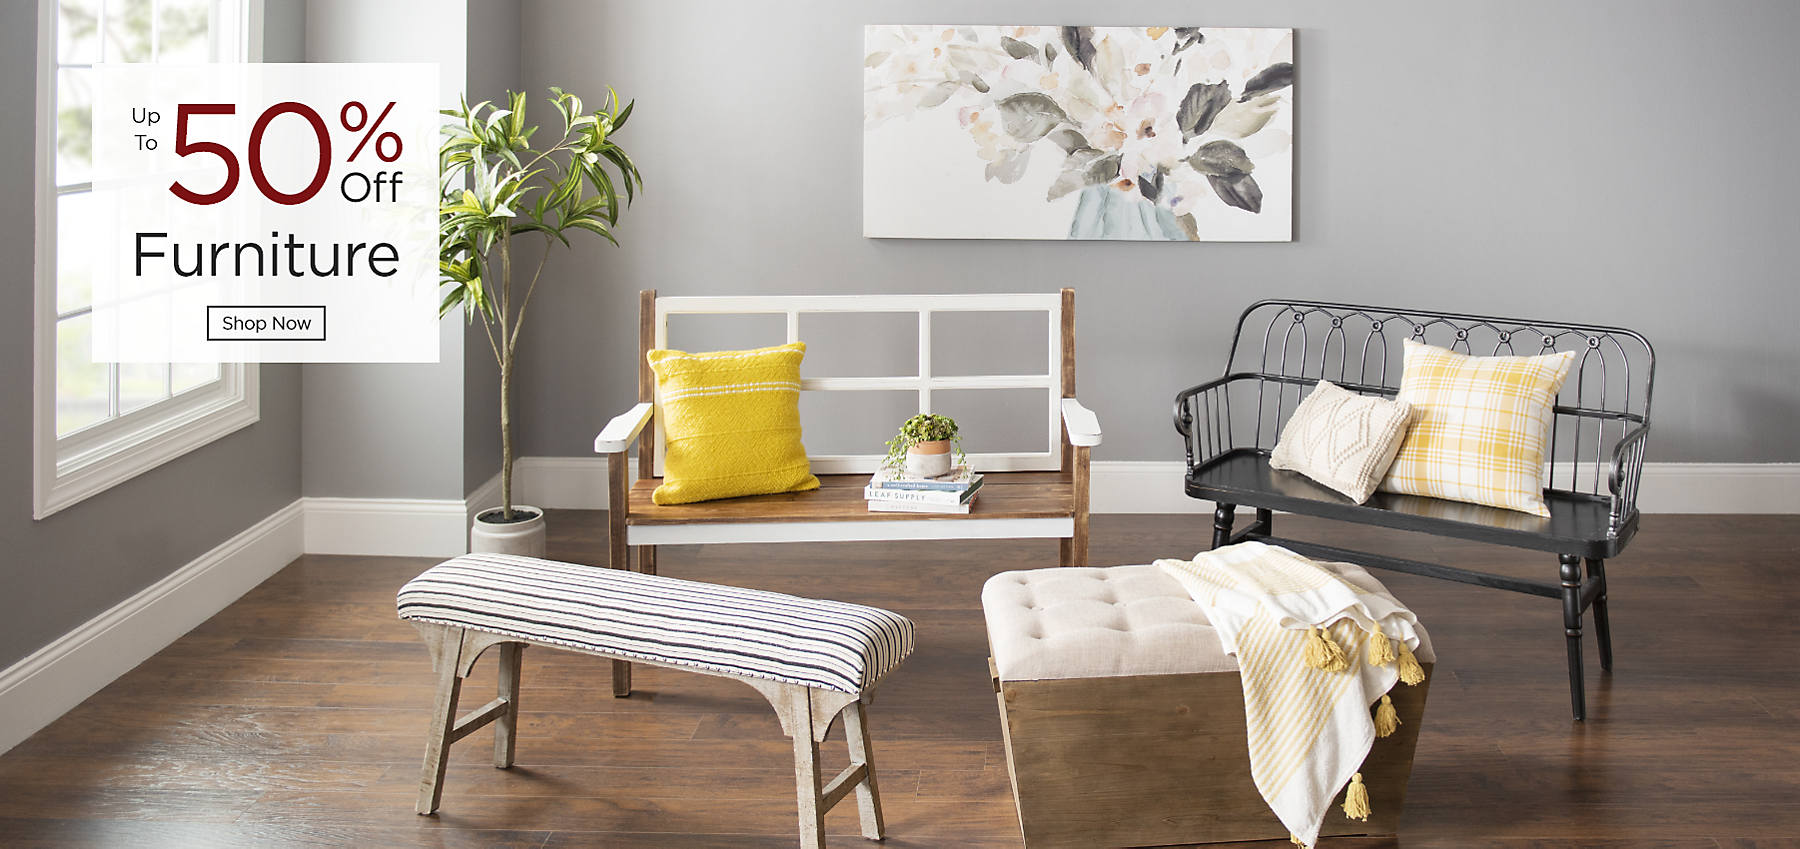 Furniture Up to 50% Off